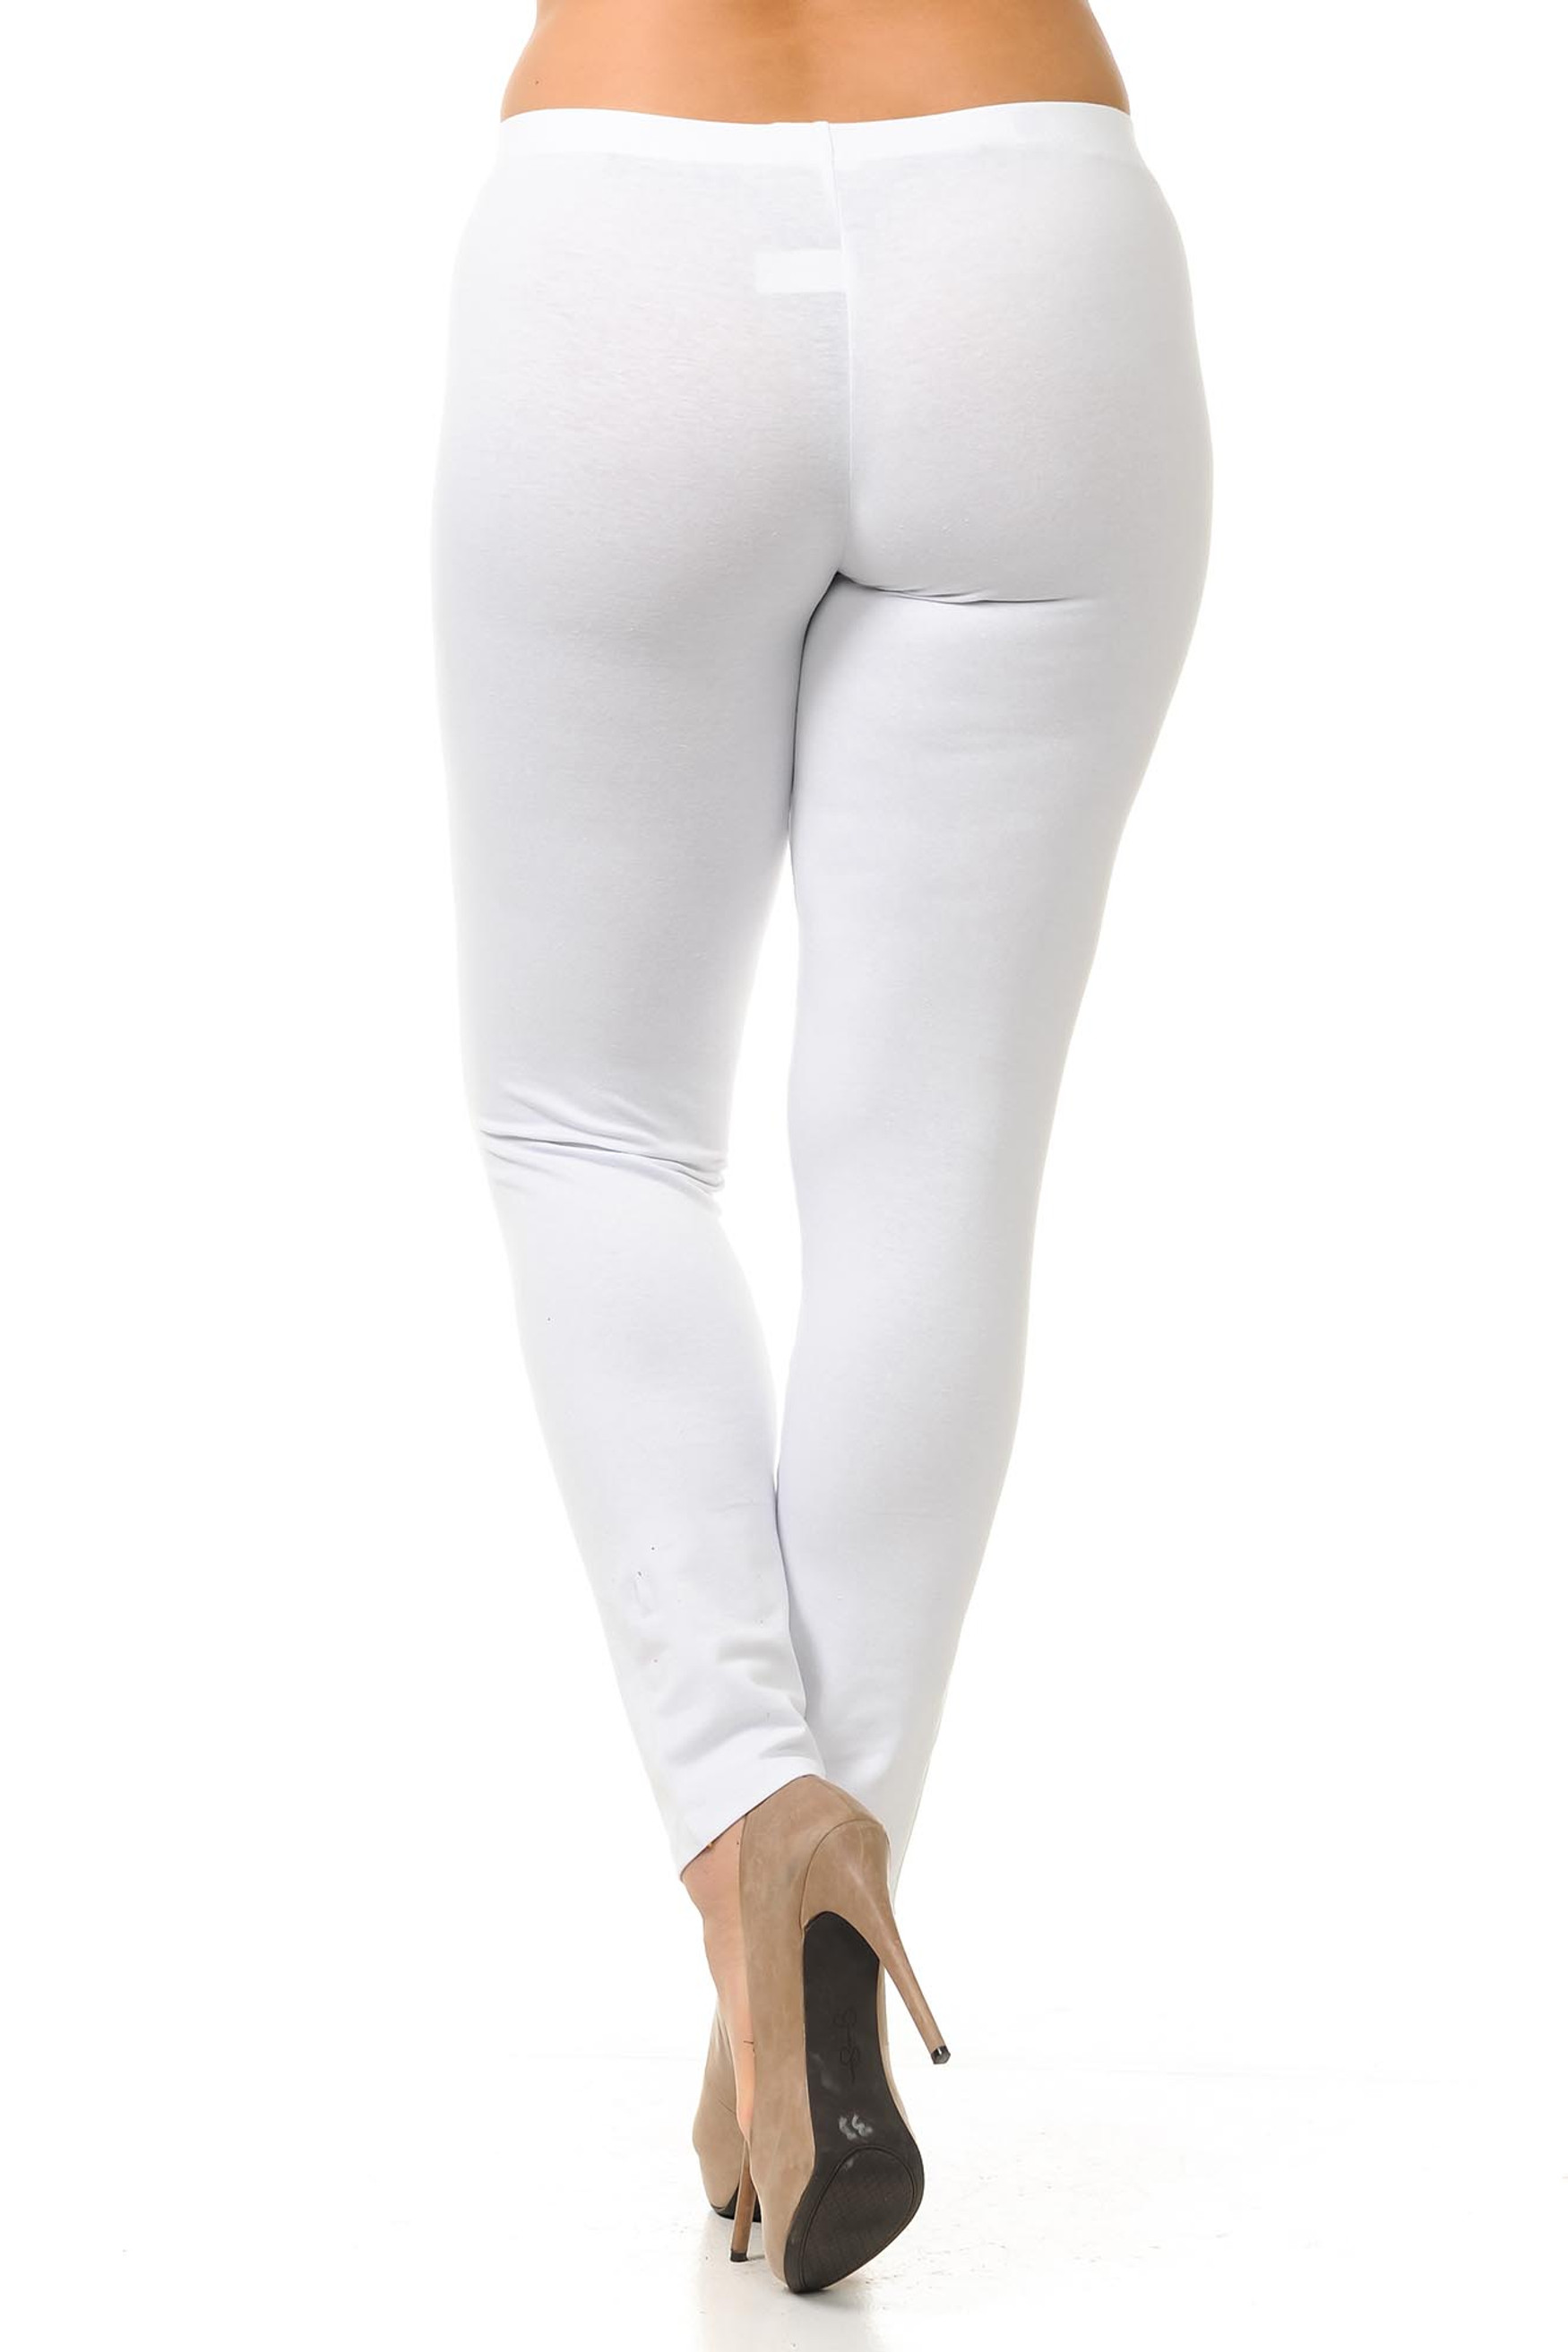 Back view of white made in the USA plus size cotton full length leggings